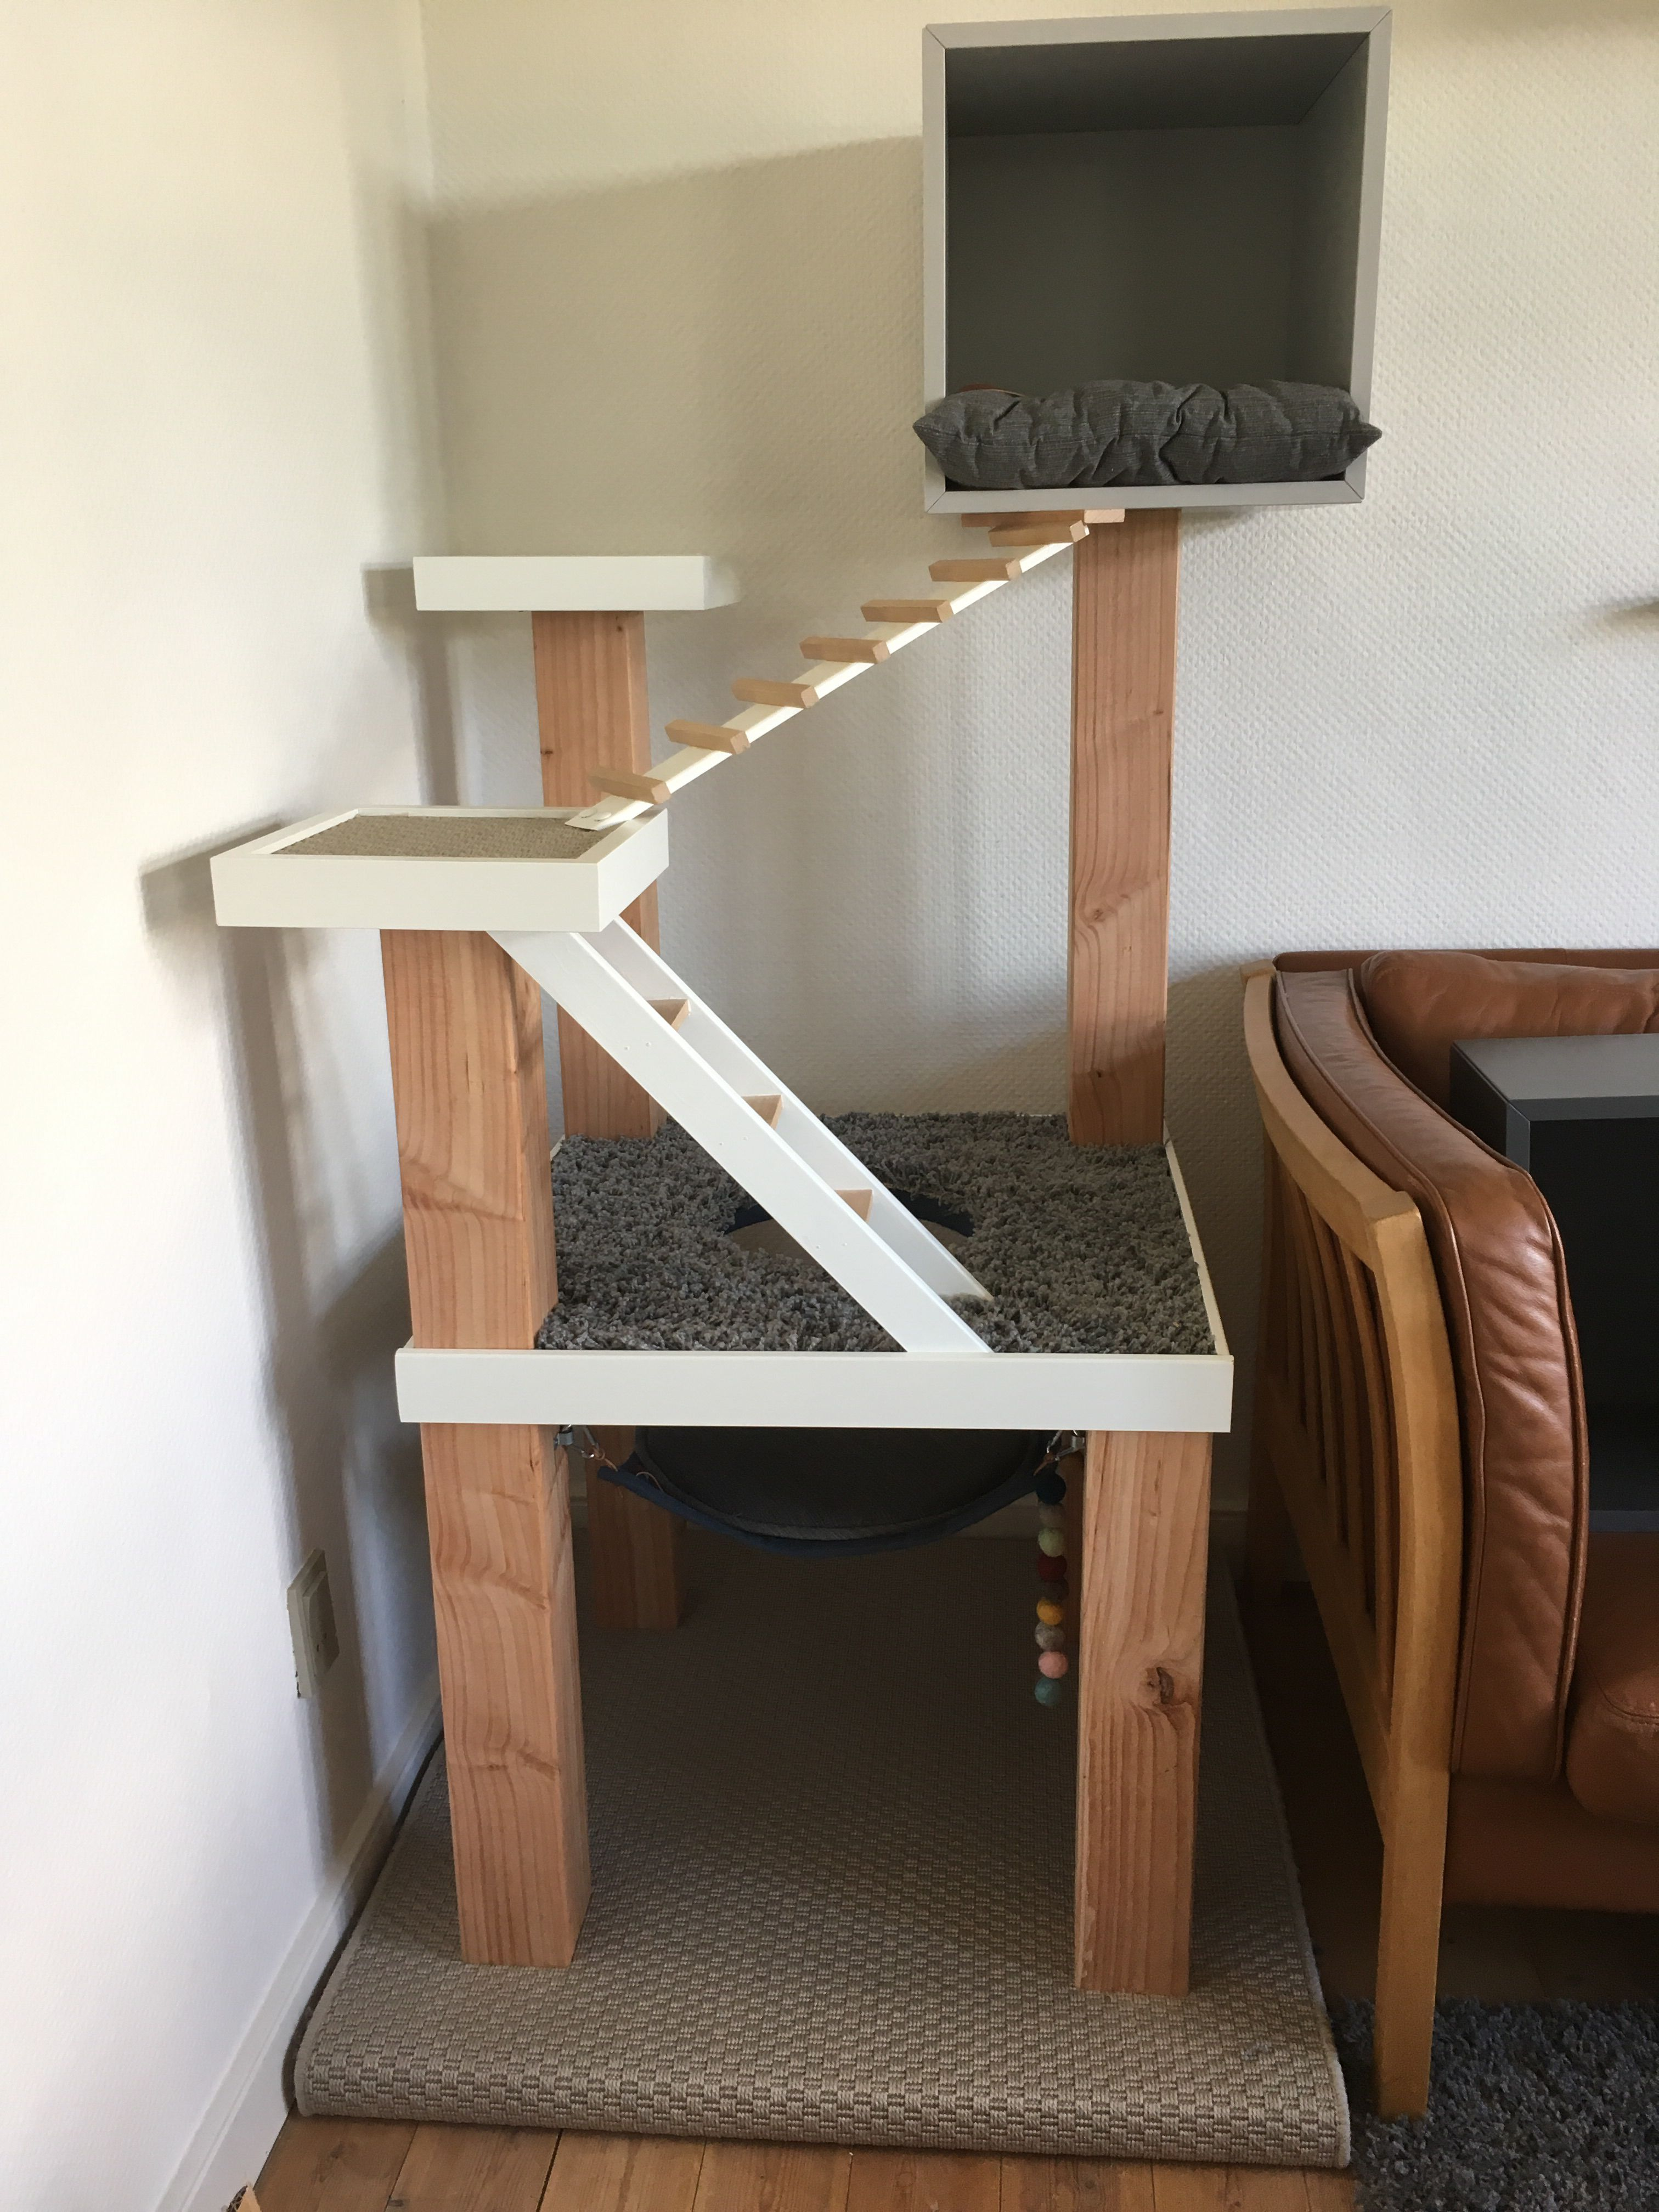 Diy Cat Tree Scratching Post With Stairs And Hammock Made Of